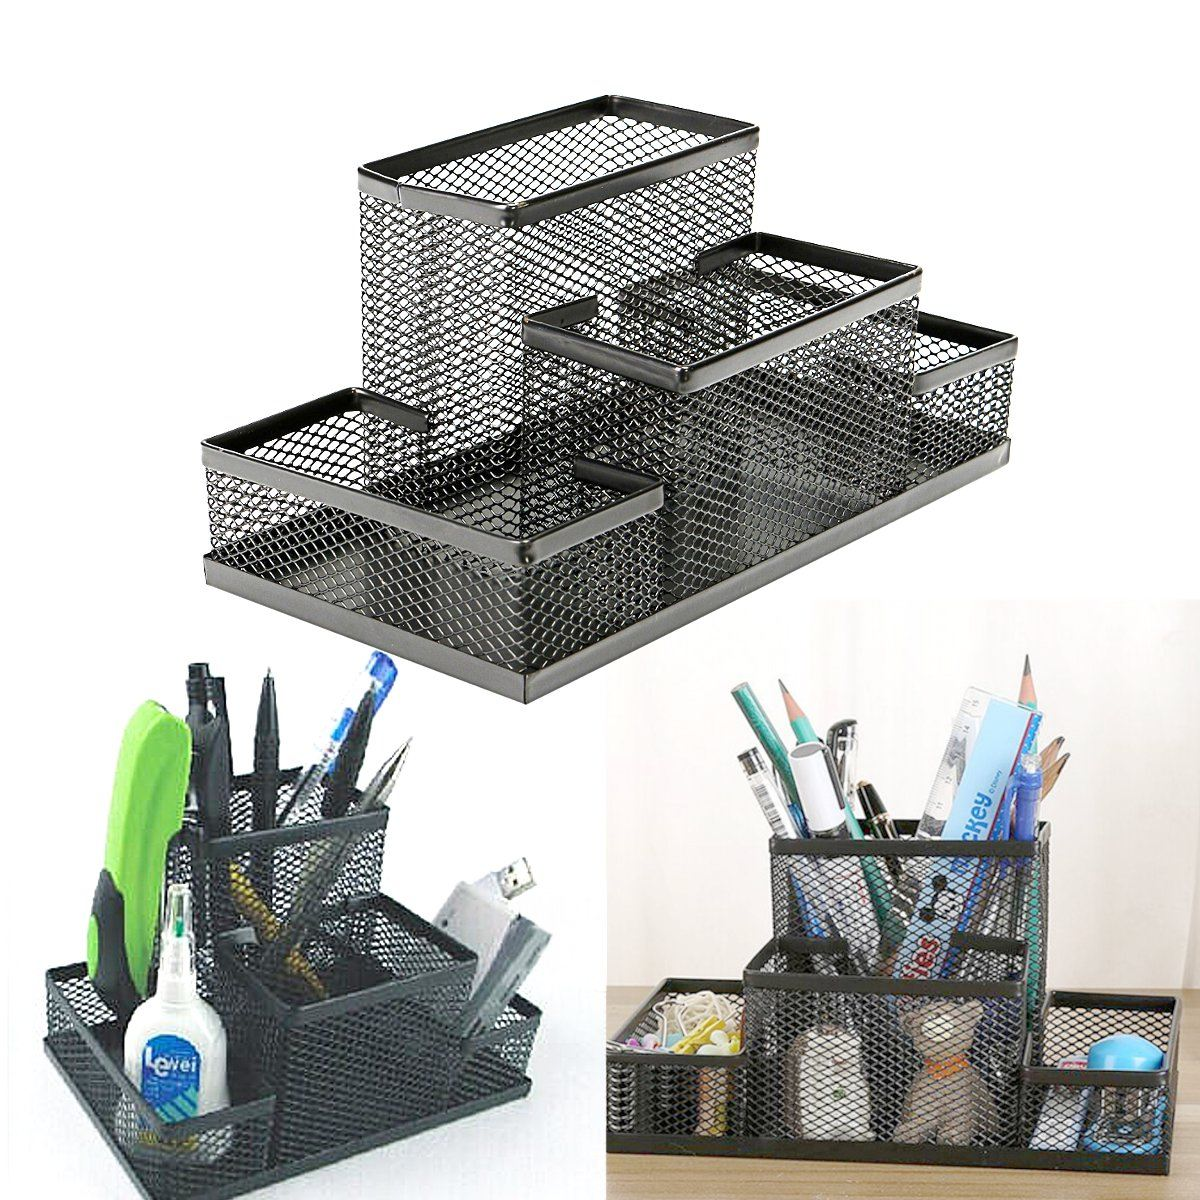 Metal Mesh Holder Pencil Pot Desktop Pen Iron Combination Pen Stands Set Holder Organizer Office Home Stationery Storage Case